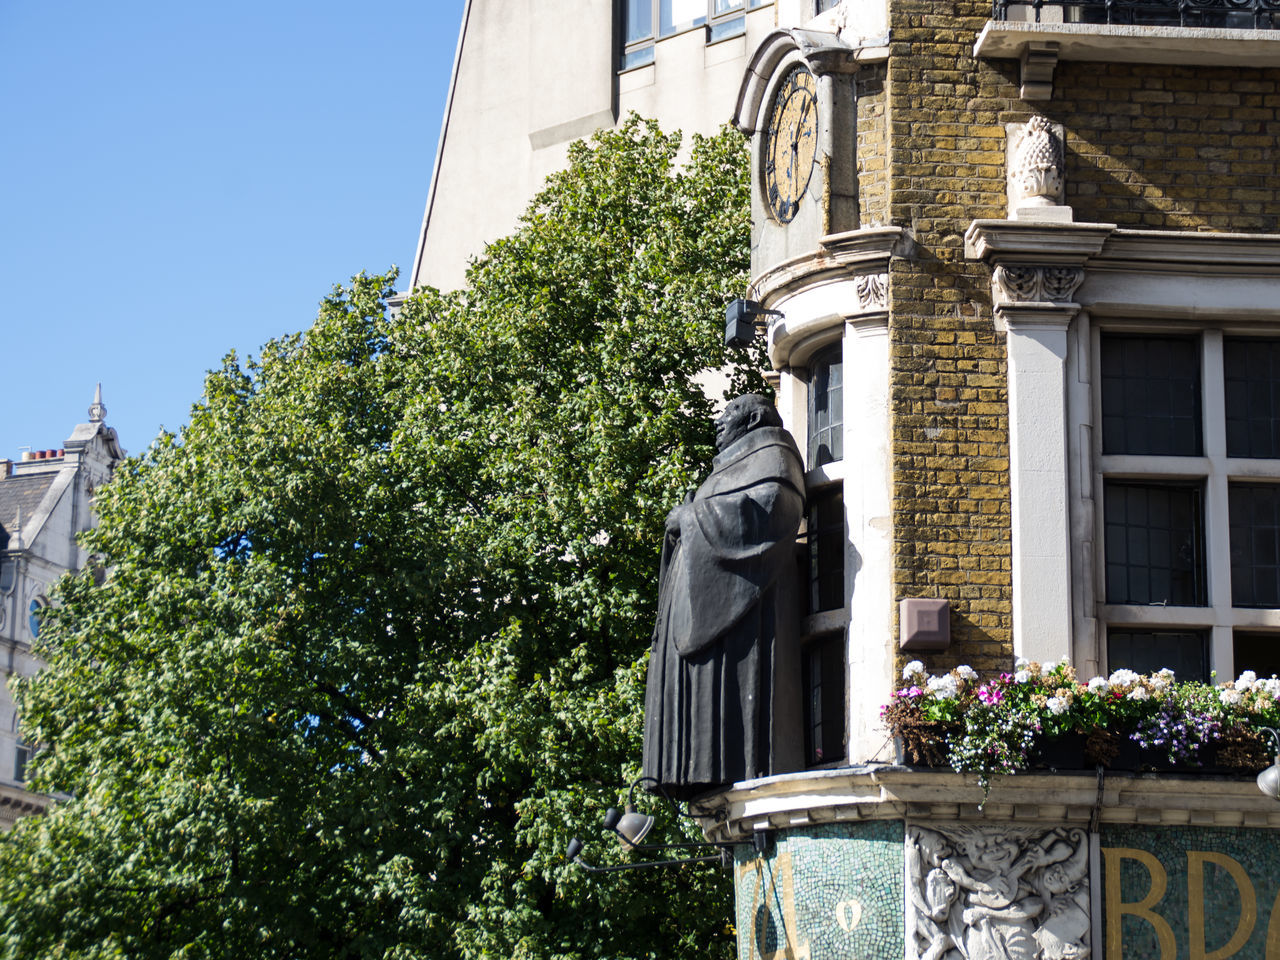 Cheerful Friar over the pub door :) Architecture Blackfriars Bricks Britain City City Life Clock England Friar London Photography Pub Sculpture Statue Summer Trees Window